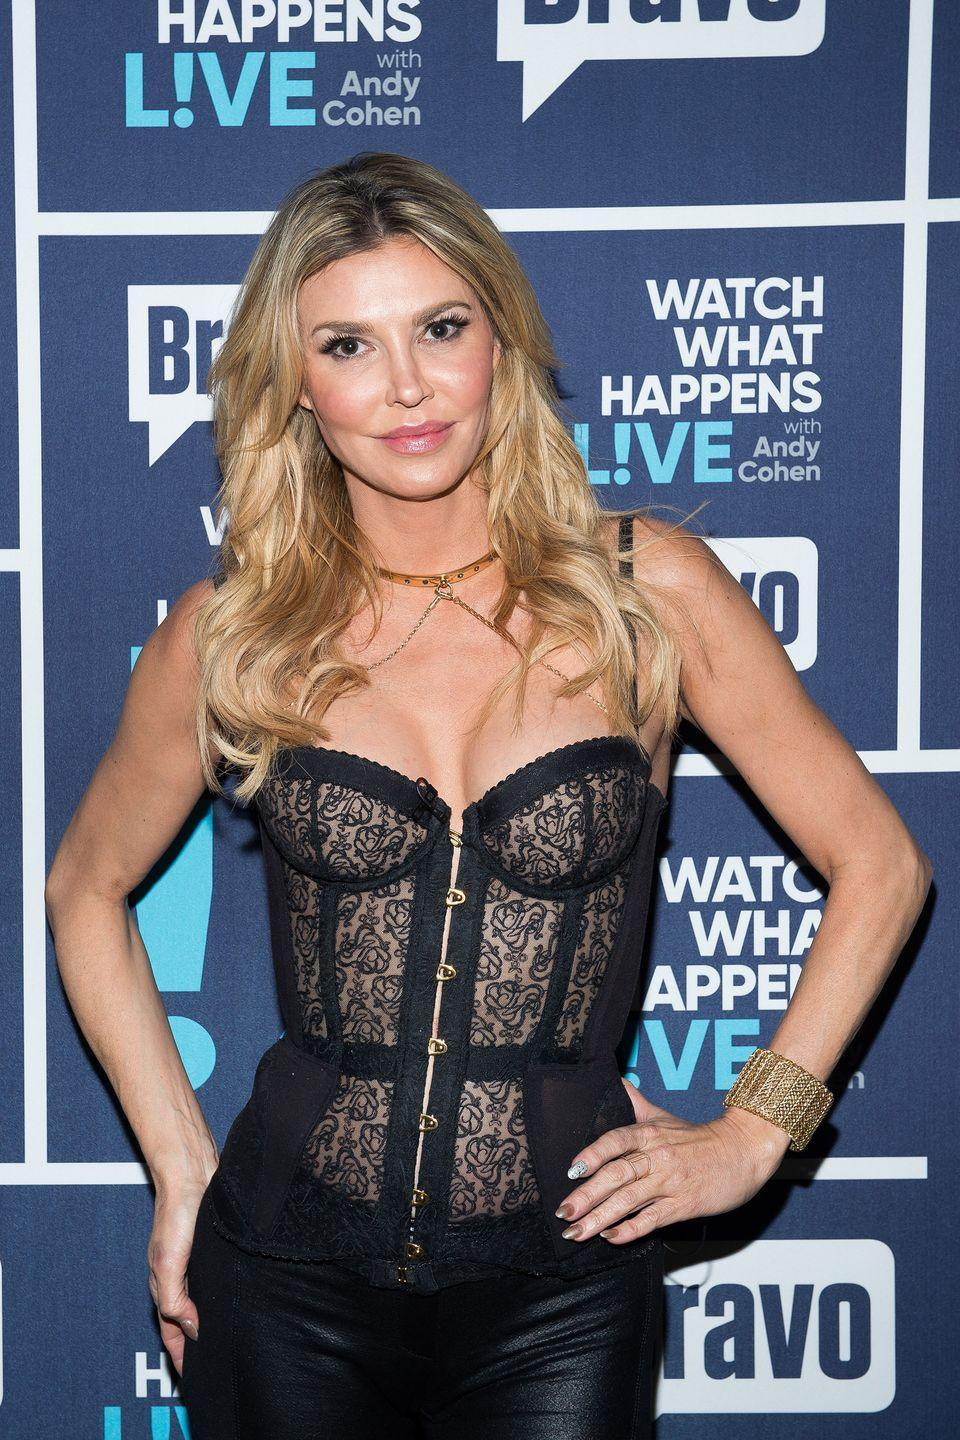 """<p>Oh, Brandi Glanville… Despite leaving (or getting fired—it's unclear which) the <em>Real Housewives of Beverly Hills</em> after season 5, hers was the name on everyone's lips at the climax of the latest season, when she claimed to have had an affair with <em>Housewives</em> newcomer Denise Richards. Brandi's story has so many twists and turns it's worth of an article all it's own. Good news: <a href=""""https://www.womenshealthmag.com/life/a33313072/brandi-glanville-leave-real-housewives-of-beverly-hills/"""" rel=""""nofollow noopener"""" target=""""_blank"""" data-ylk=""""slk:We've got you covered!"""" class=""""link rapid-noclick-resp"""">We've got you covered!</a></p>"""